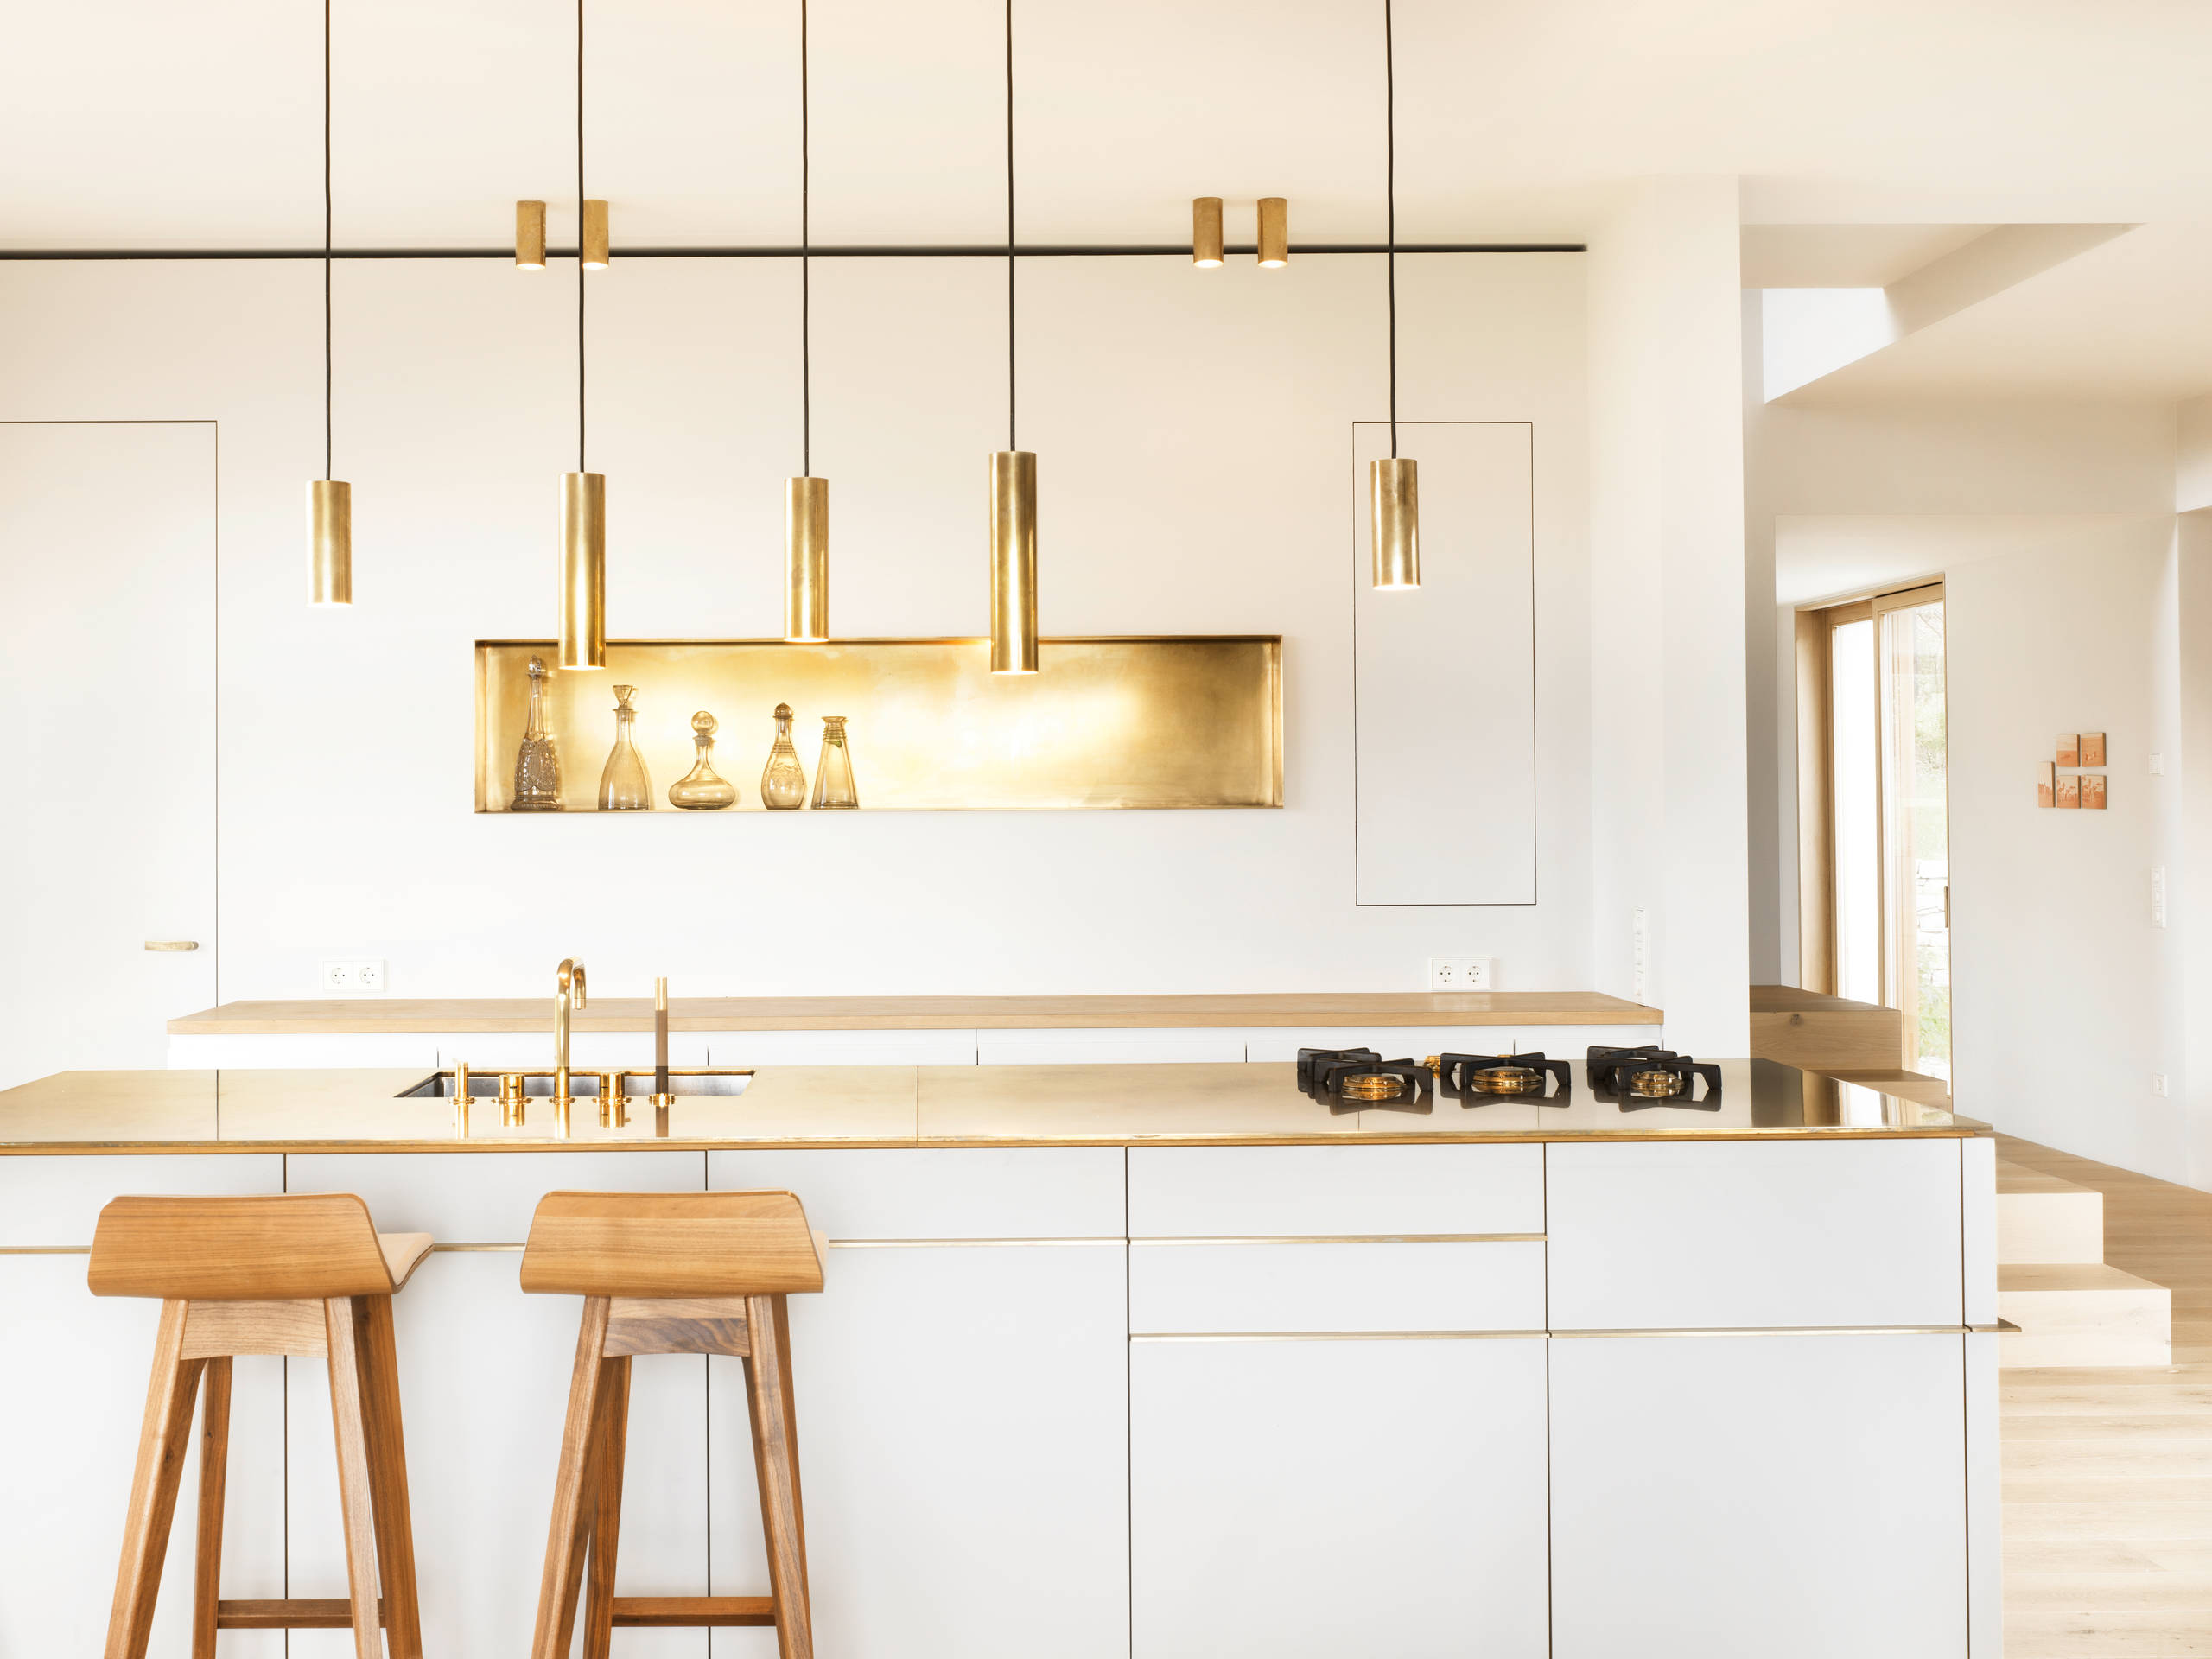 contemporary modern kitchen gold countertop hardware lighting brass metal scandinavian nordic swedish backsplash modern golden kitchen cabinets ikea